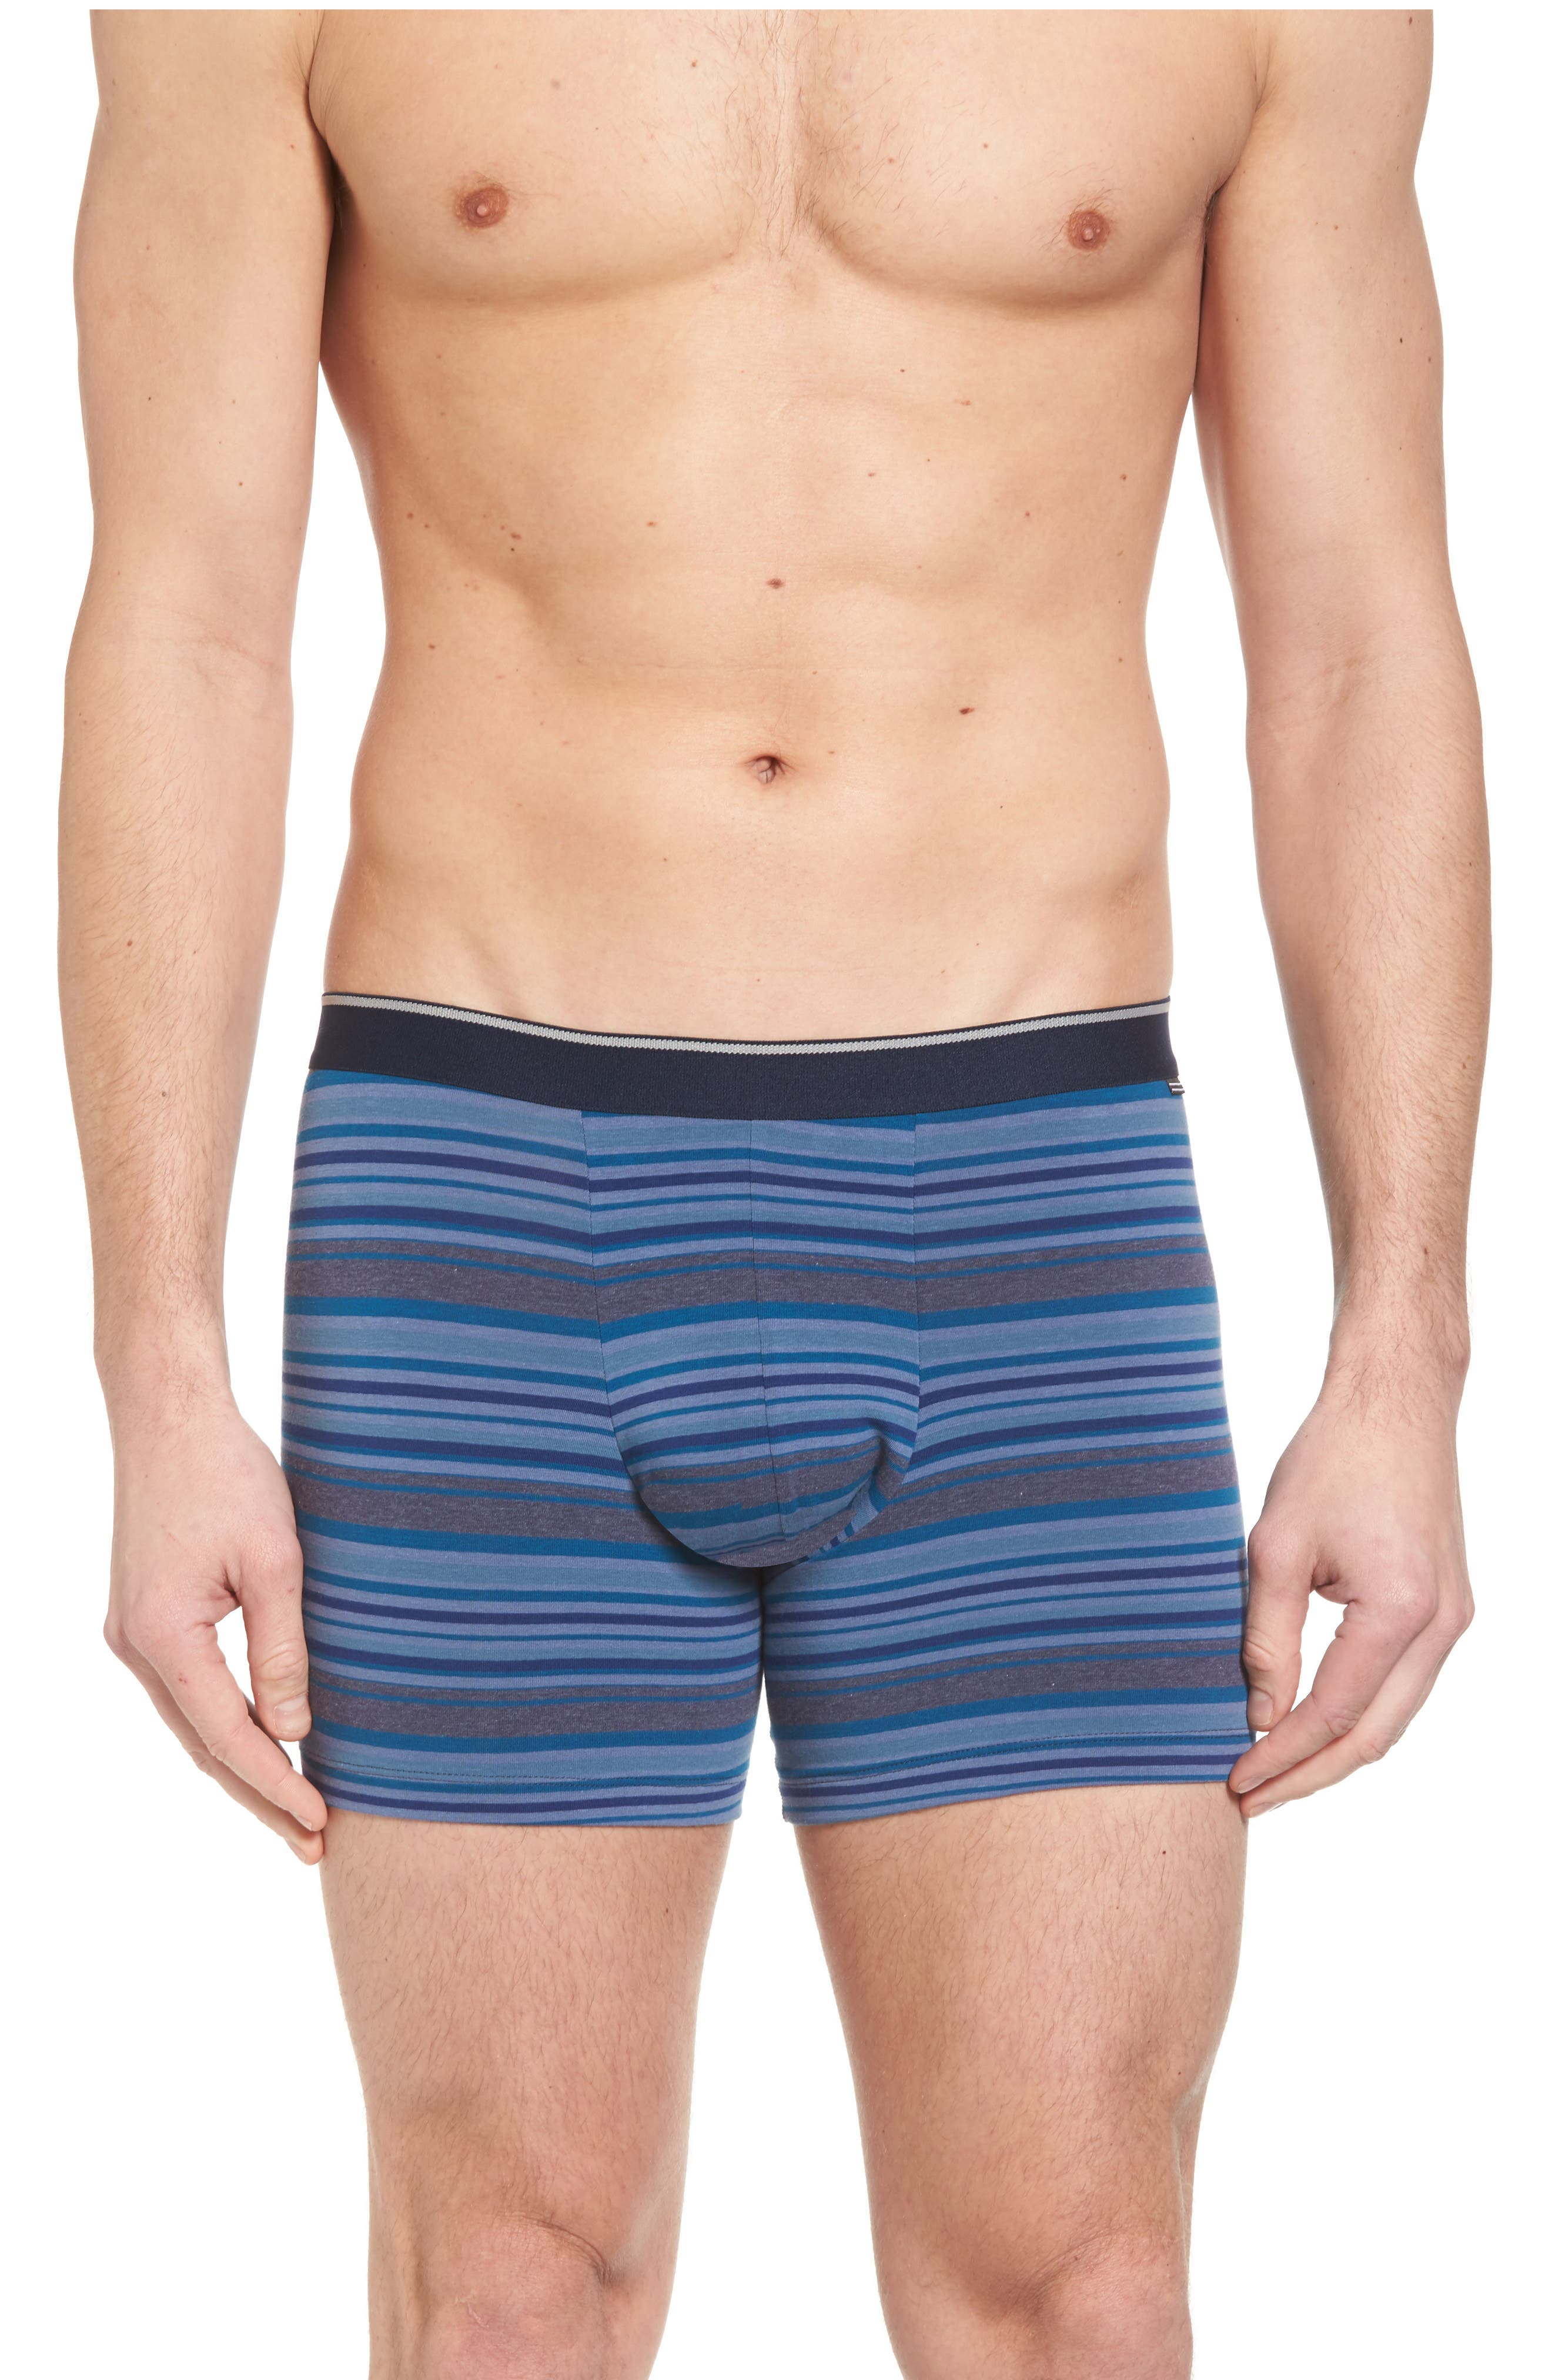 Pouch Briefs,                         Main,                         color, Blue Tonal Multi Stripe